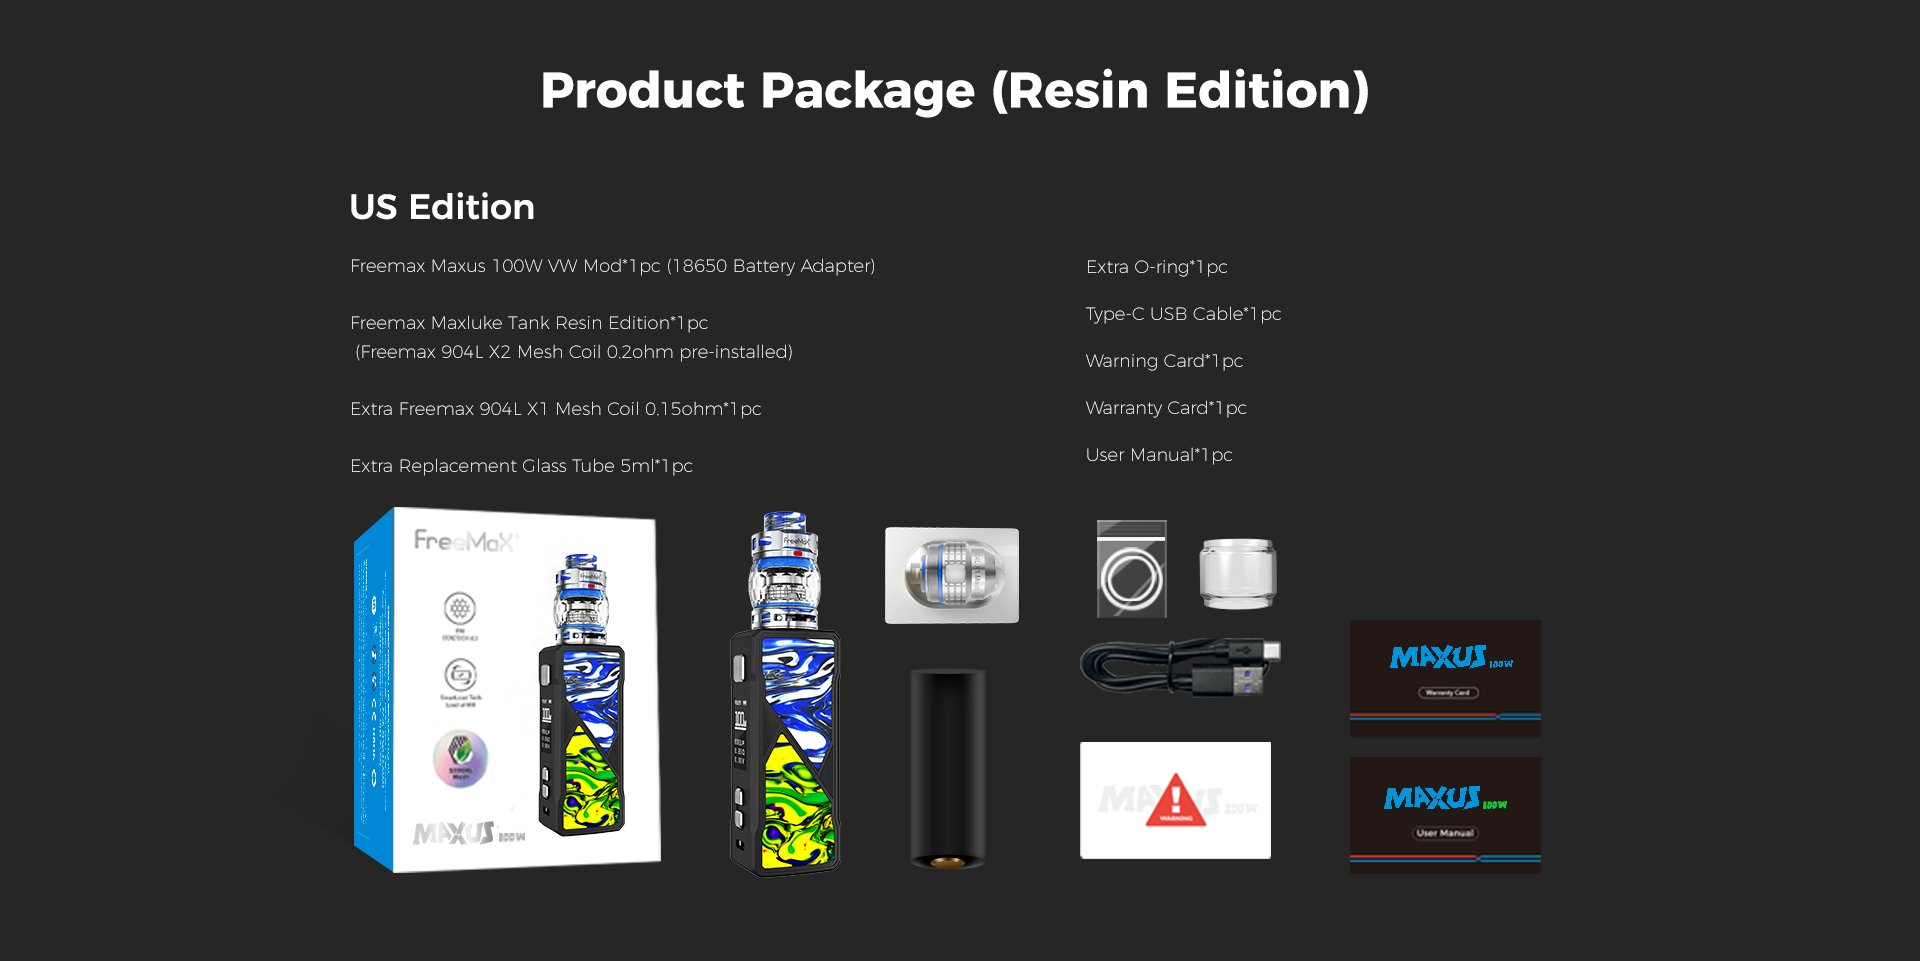 product-package-resin-edition-us-edition